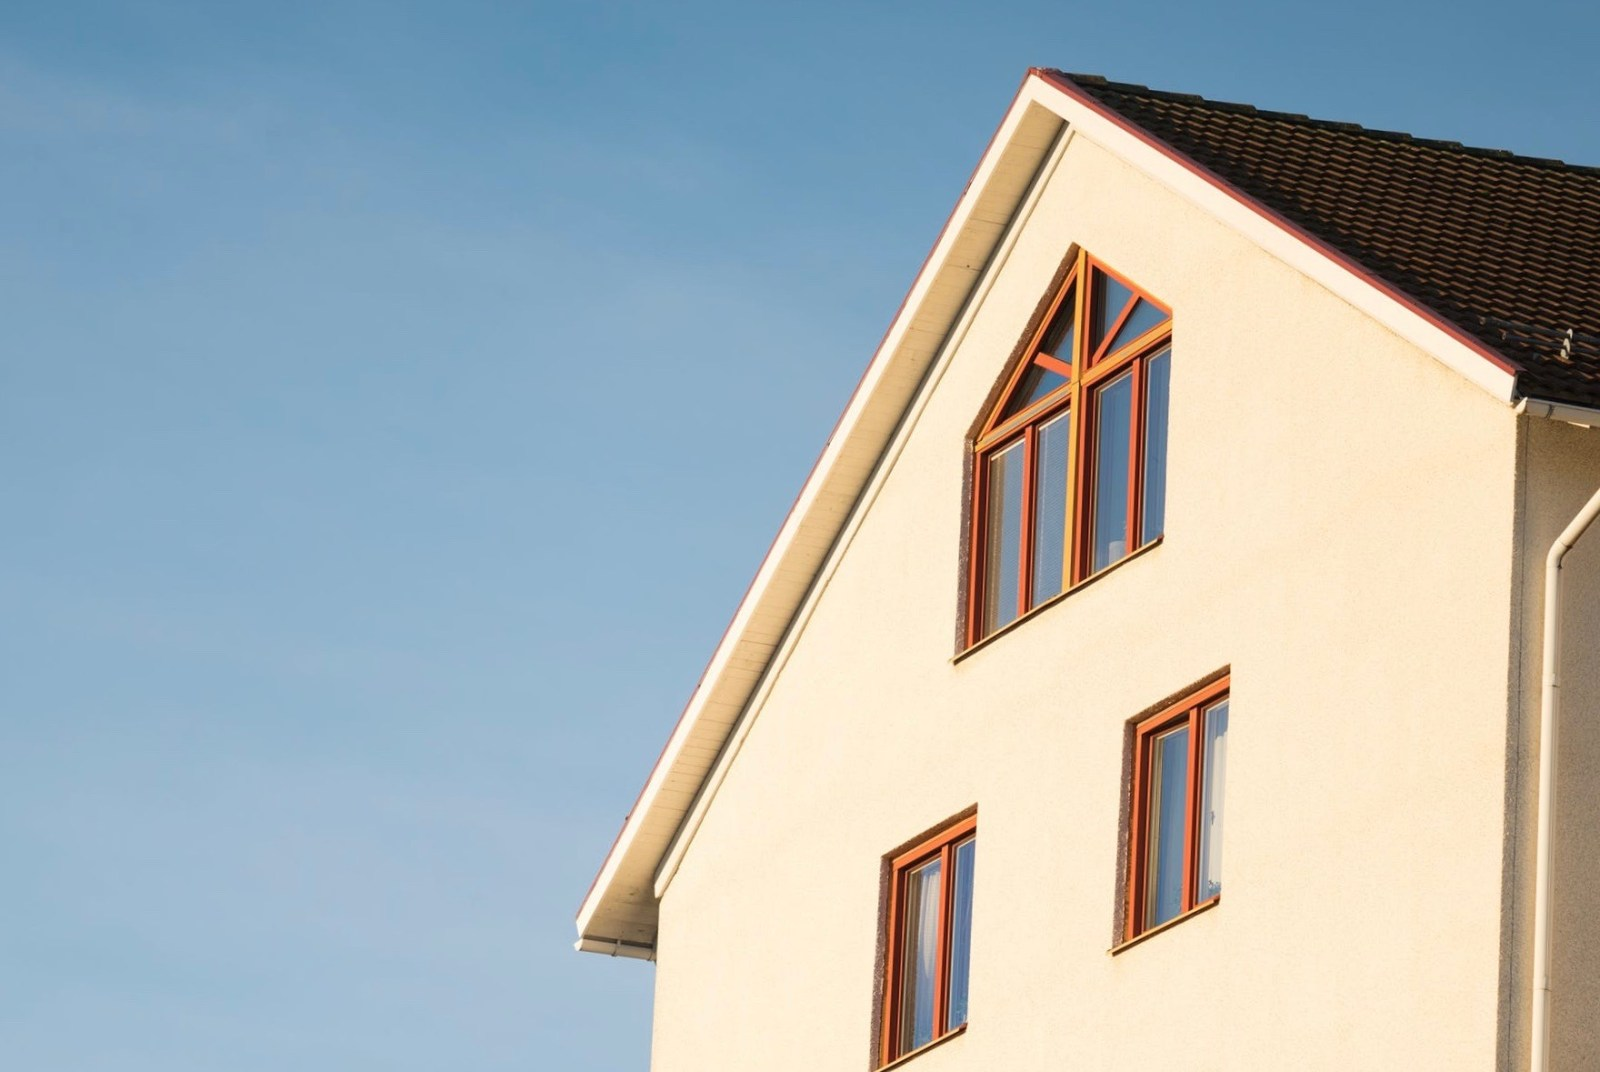 Experts Agree, Window Film Can Help Cut Home Energy Bills This Summer